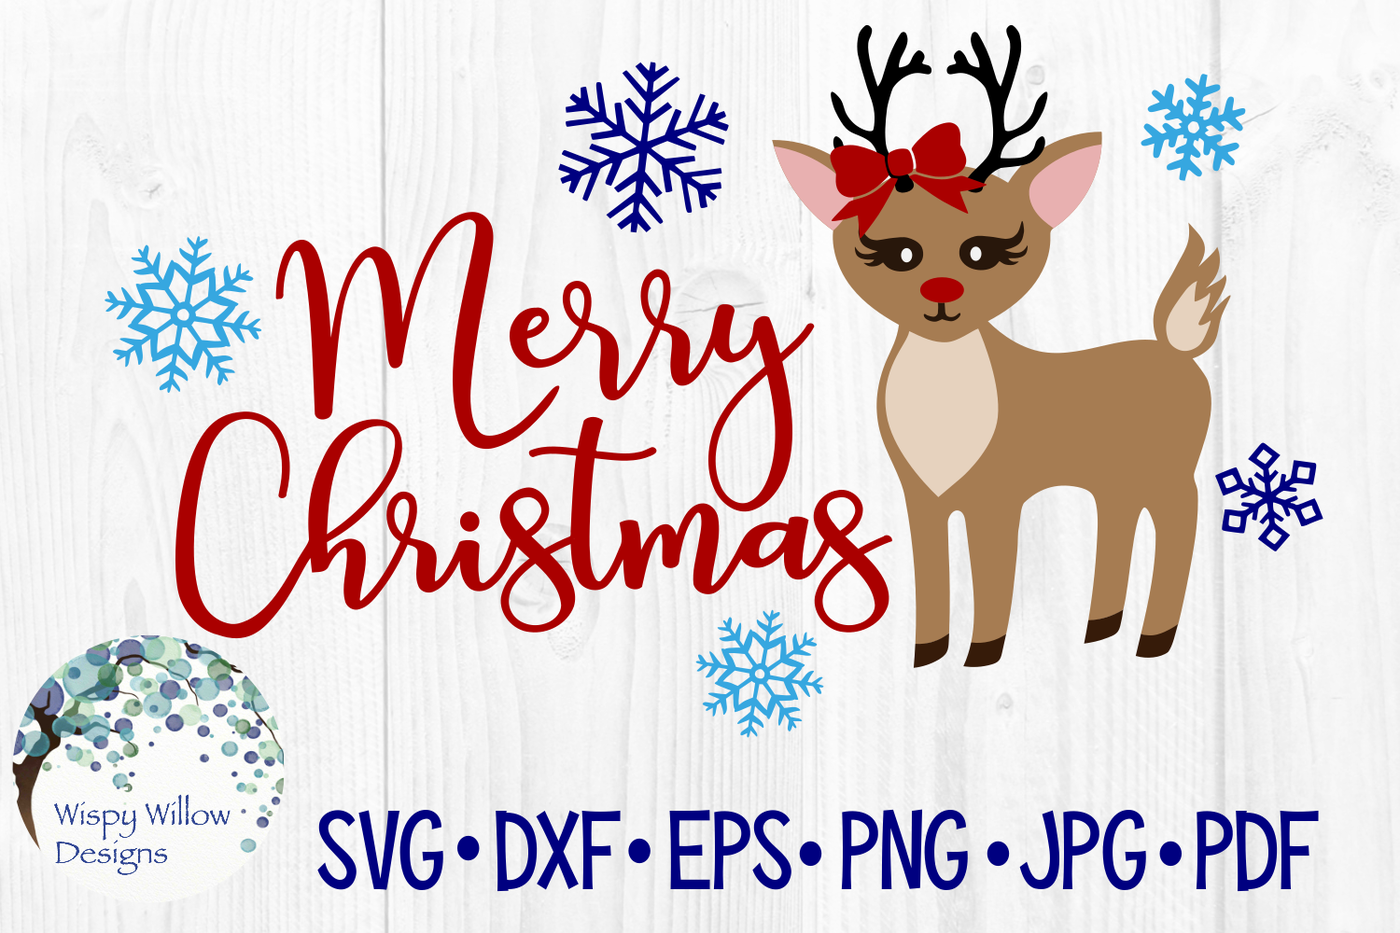 Merry Christmas Reindeer Holiday Rudolph Svg Dxf Eps Png Jpg